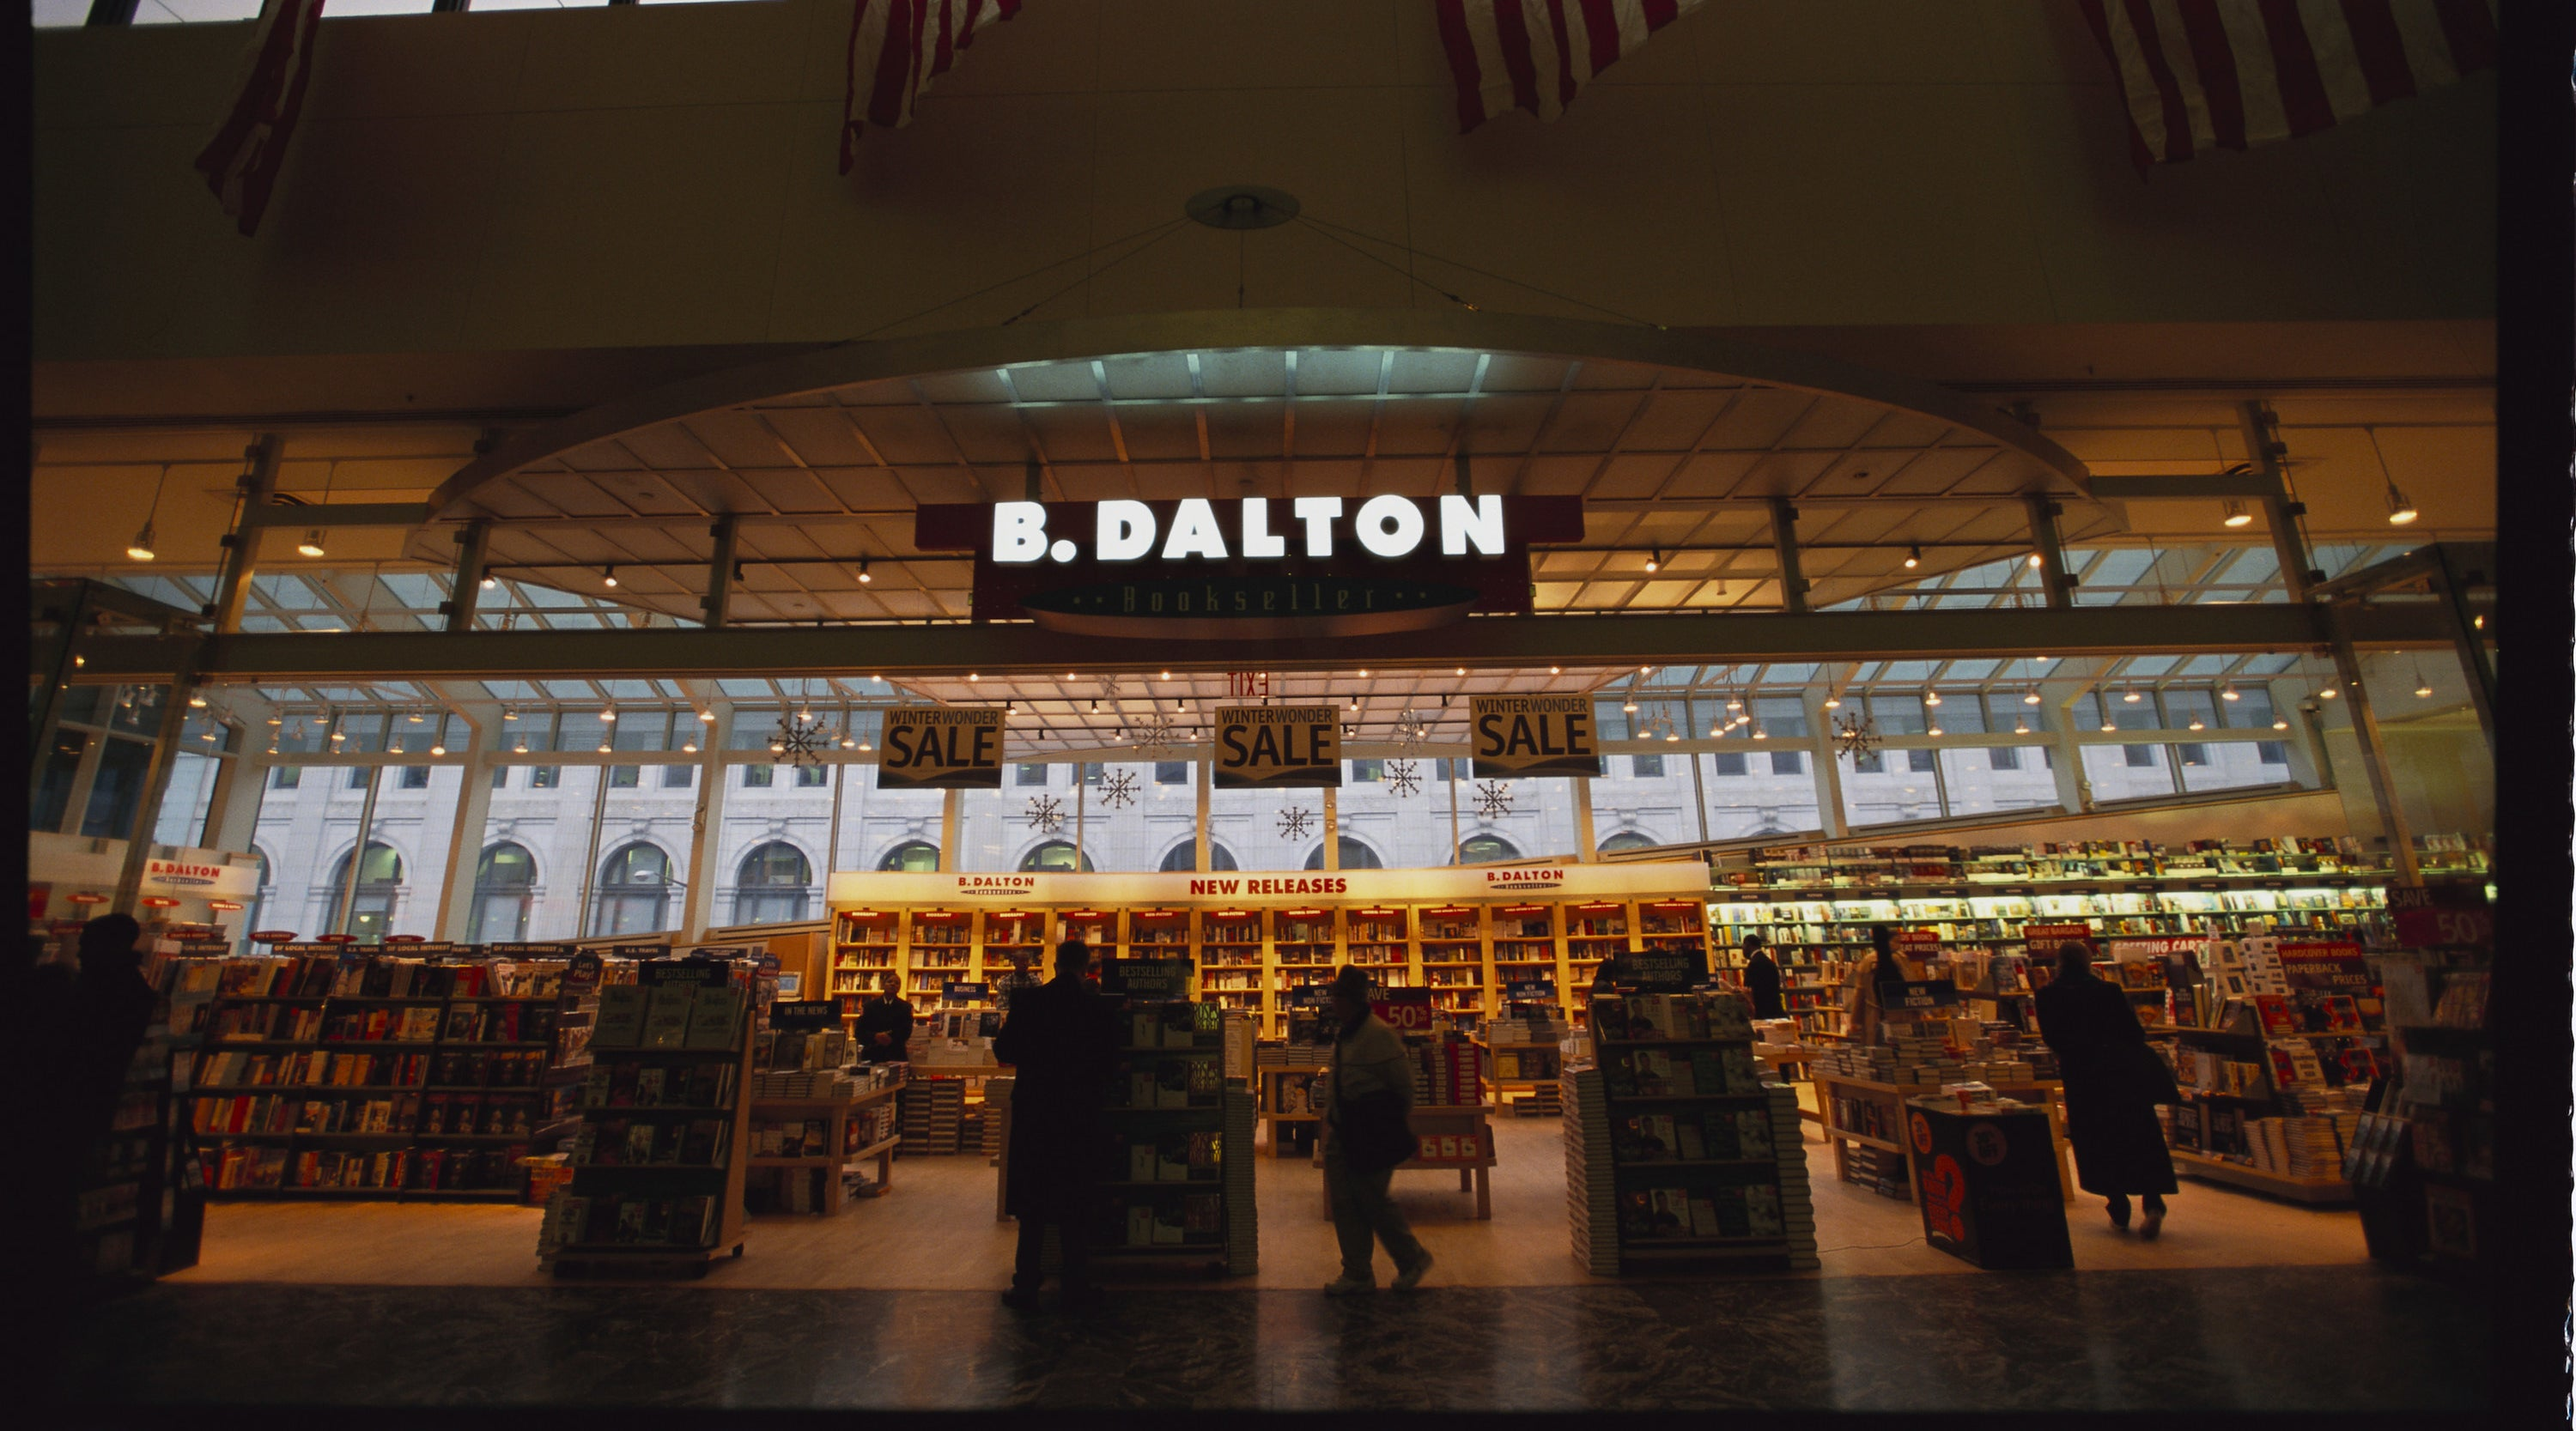 Exterior of B. Dalton Bookstore